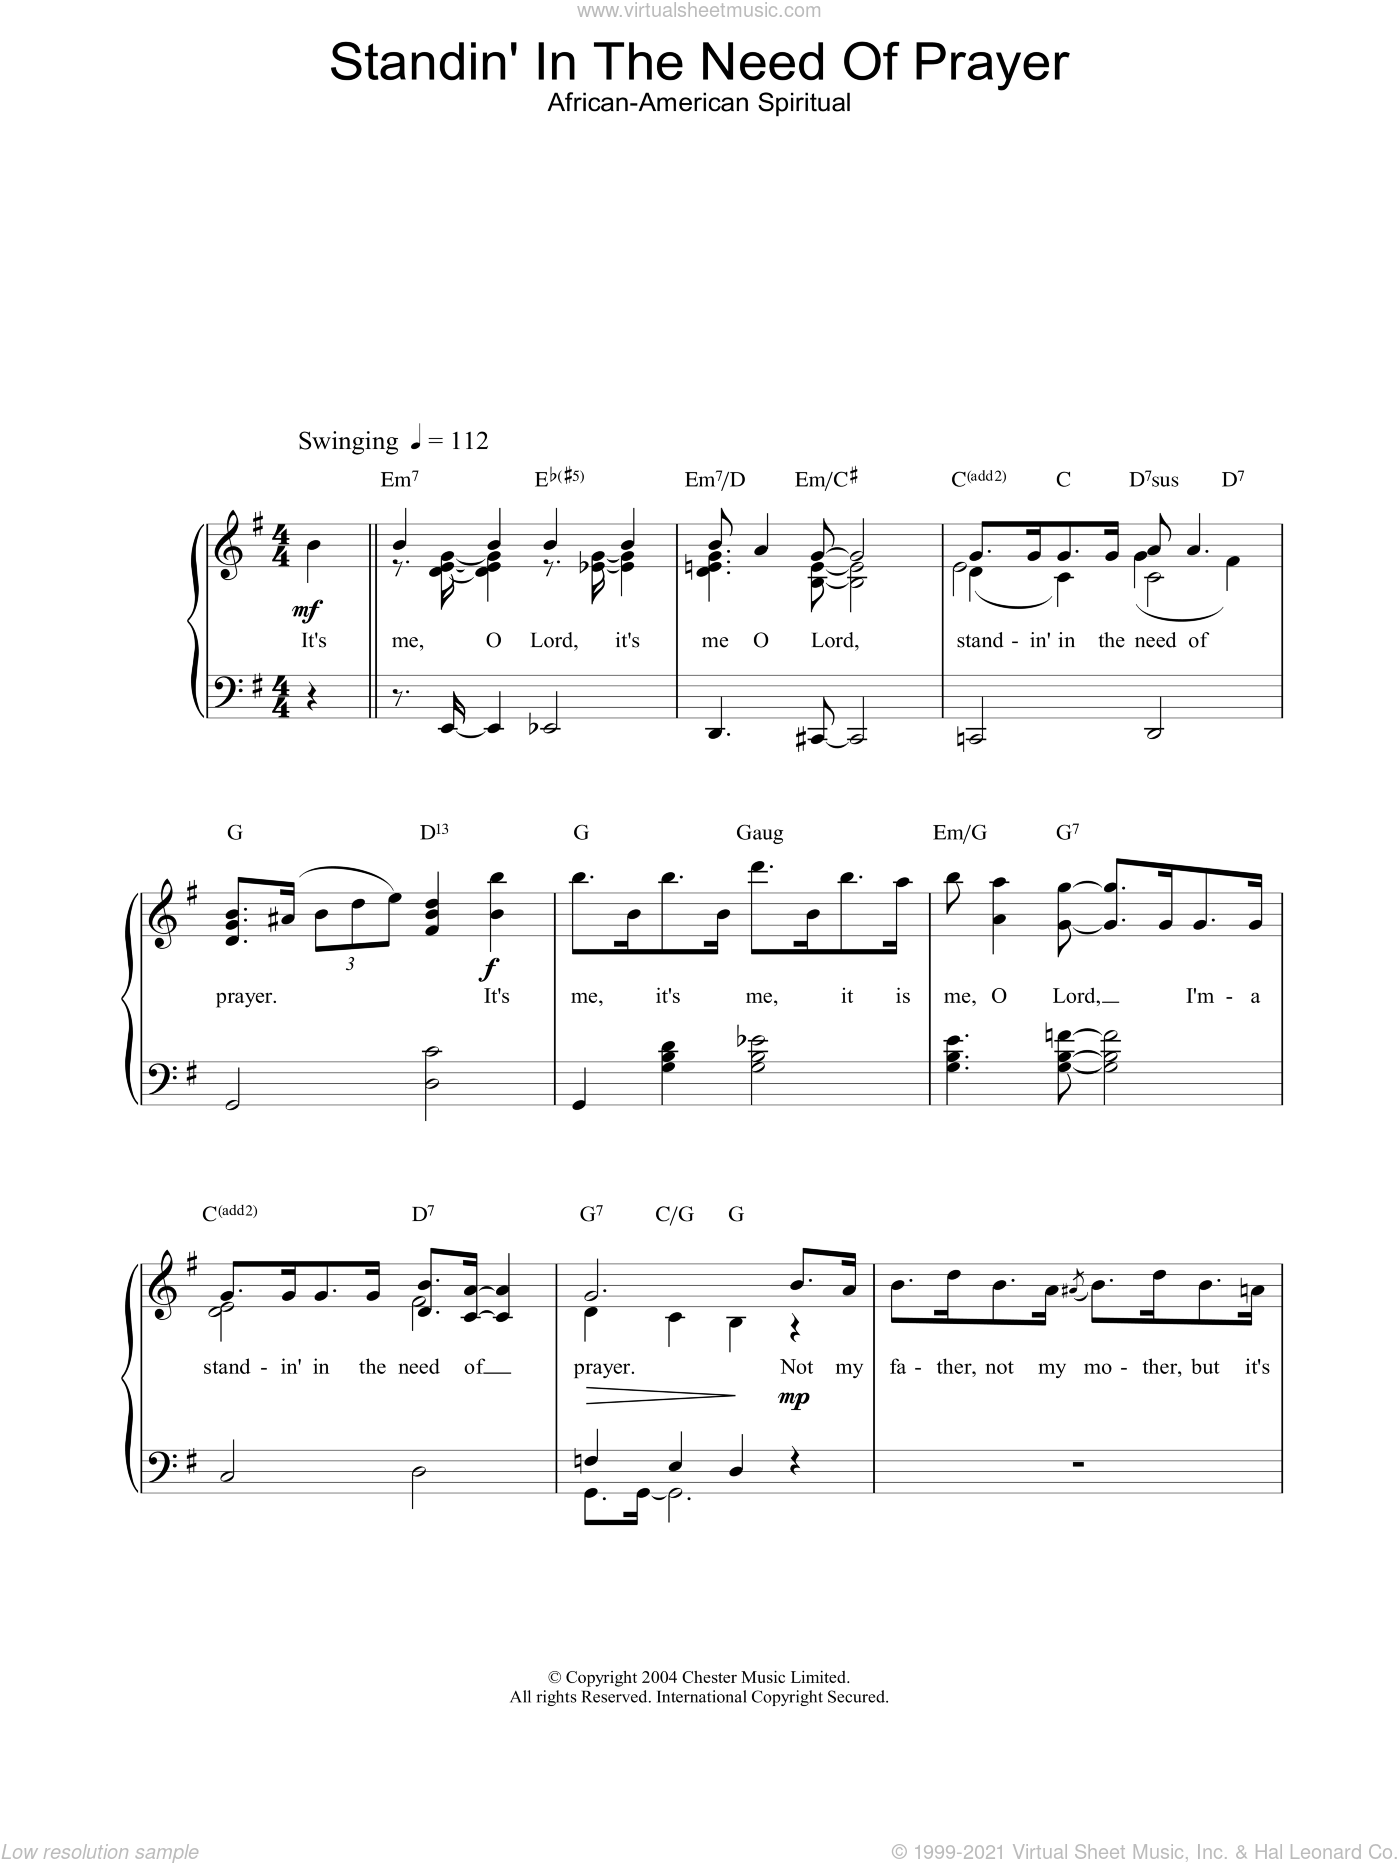 Standin' In The Need Of Prayer sheet music for piano solo. Score Image Preview.